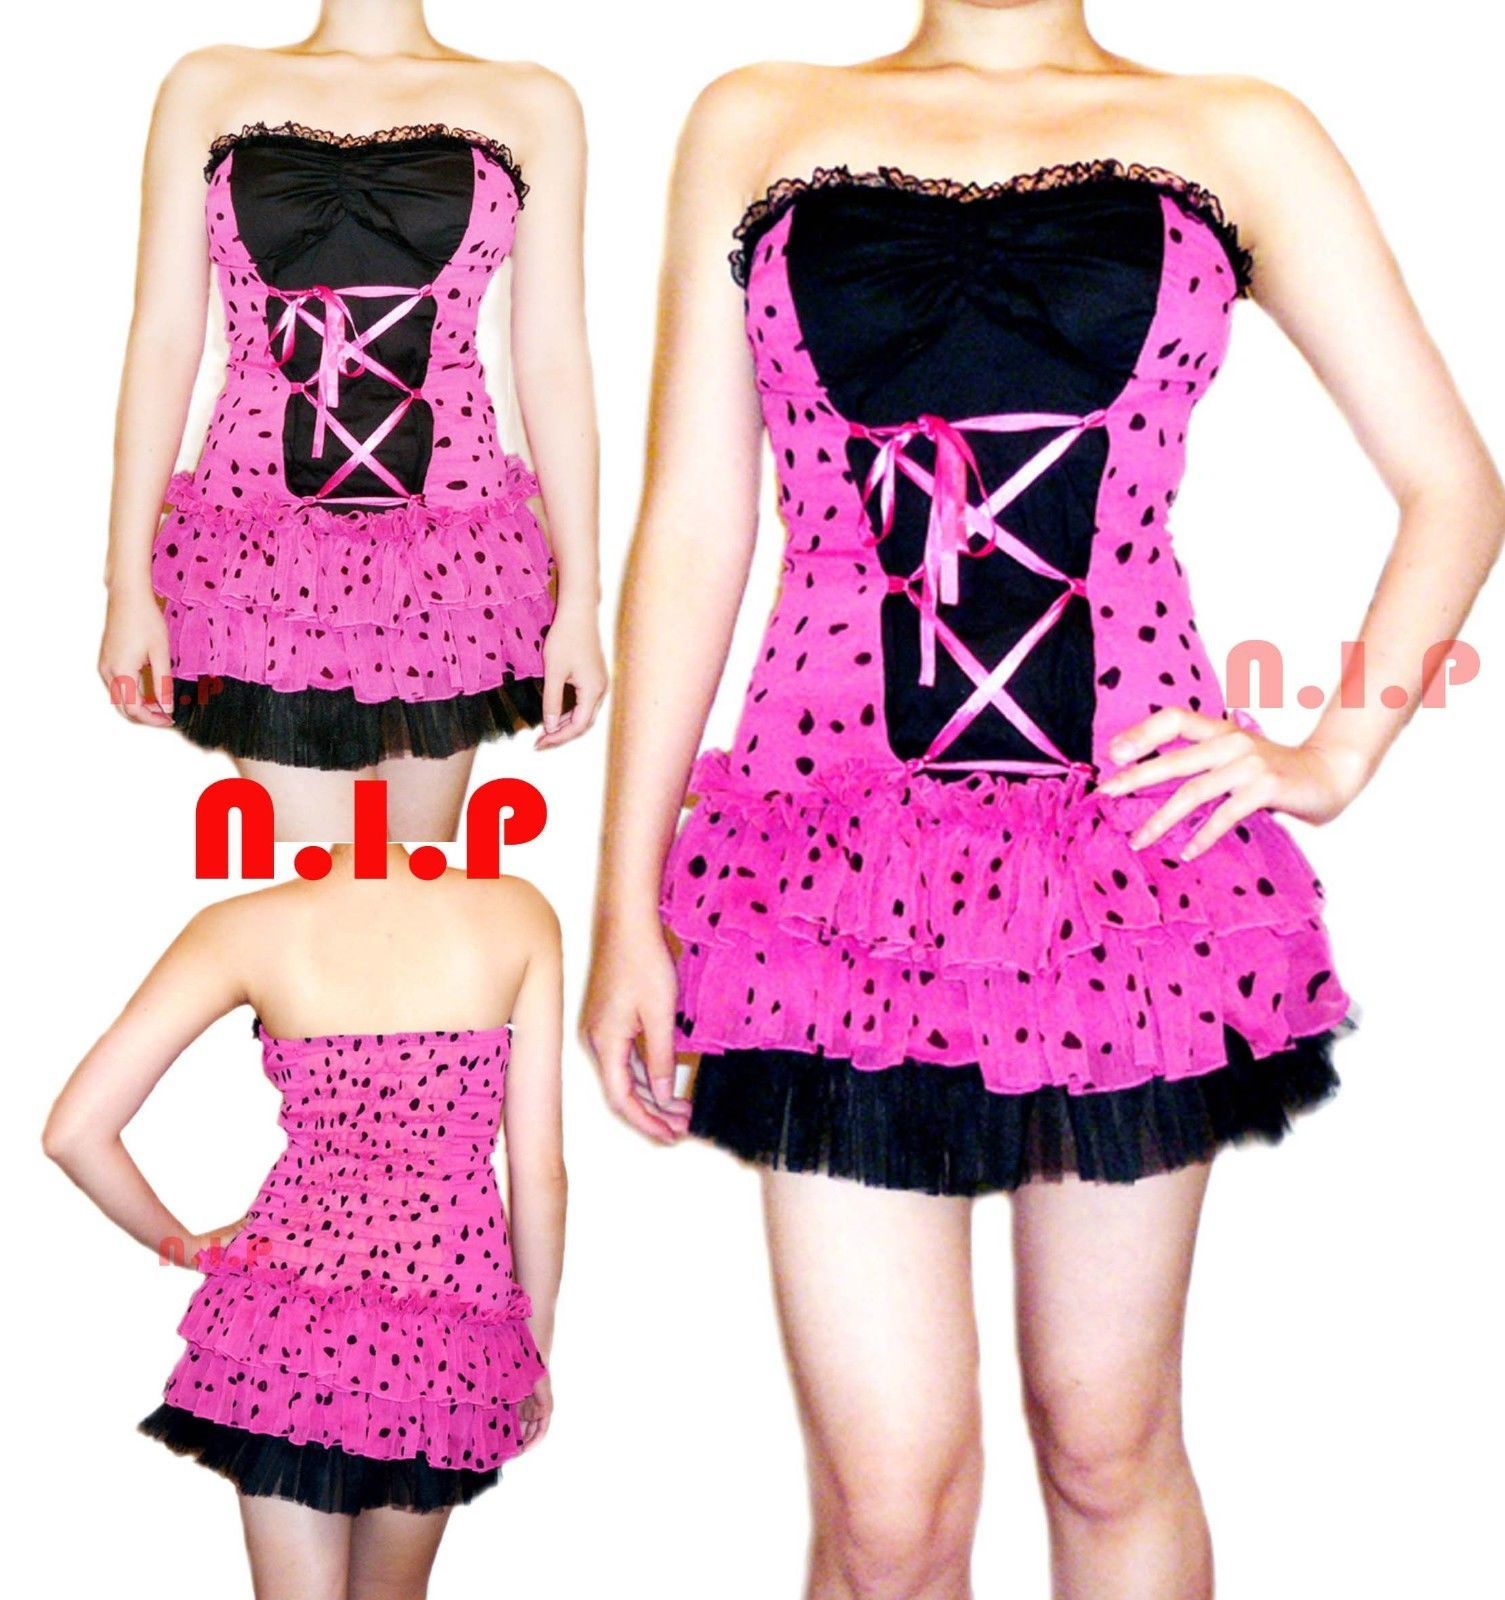 Primary image for Party Polka Dot Lace up Tulle Dress Pin Up Hot Topic Punk Goth Club Rockabilly